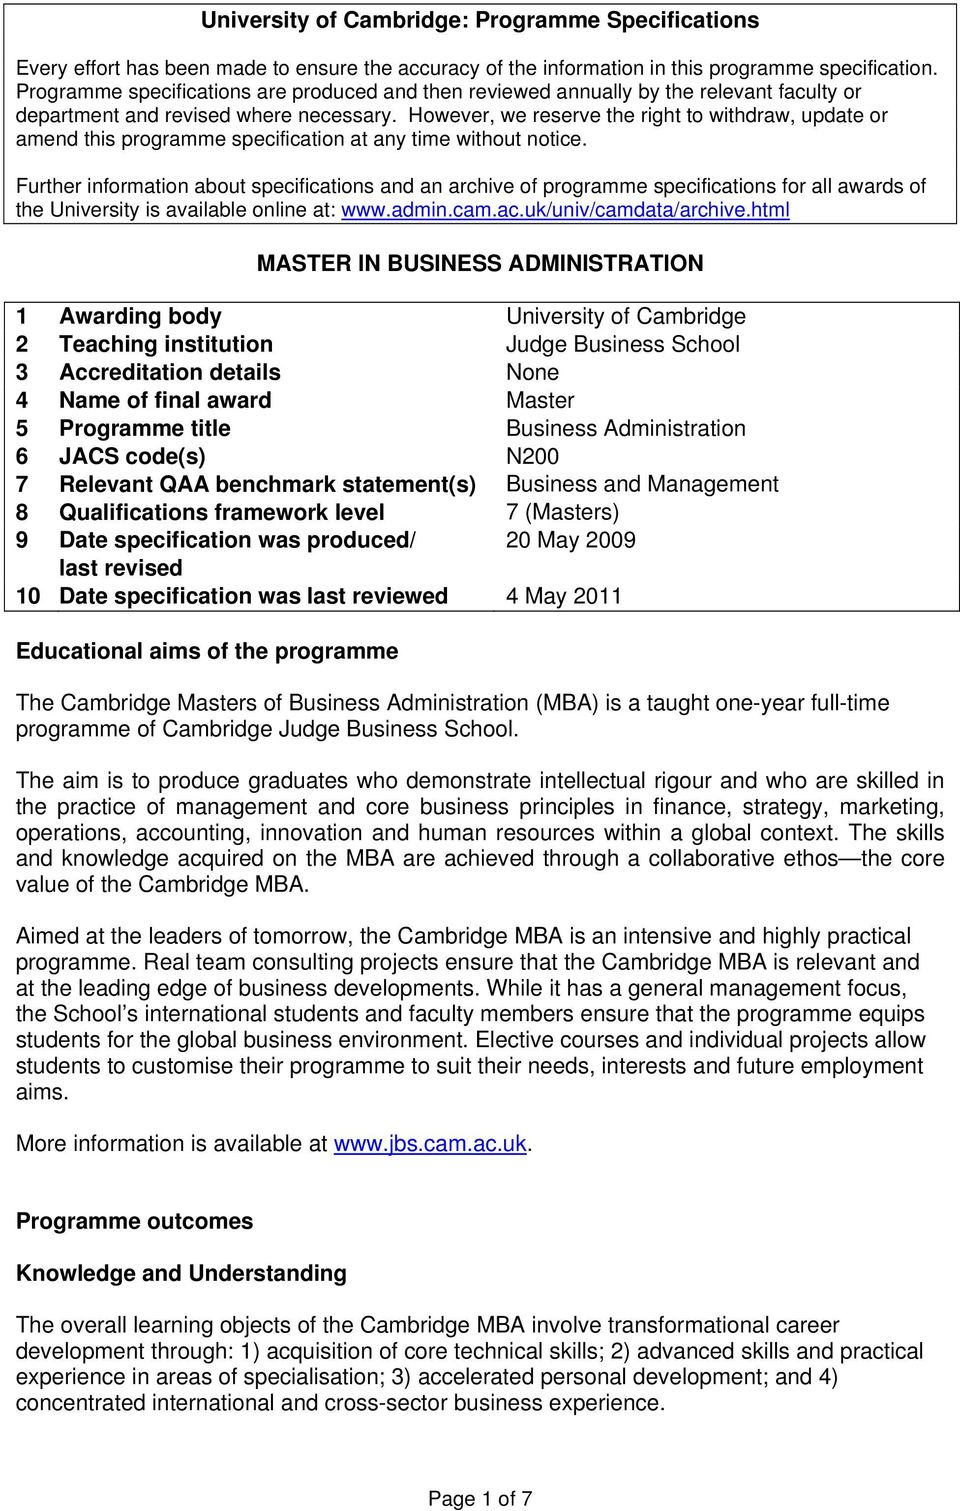 University Of Cambridge Programme Specifications Master In Business